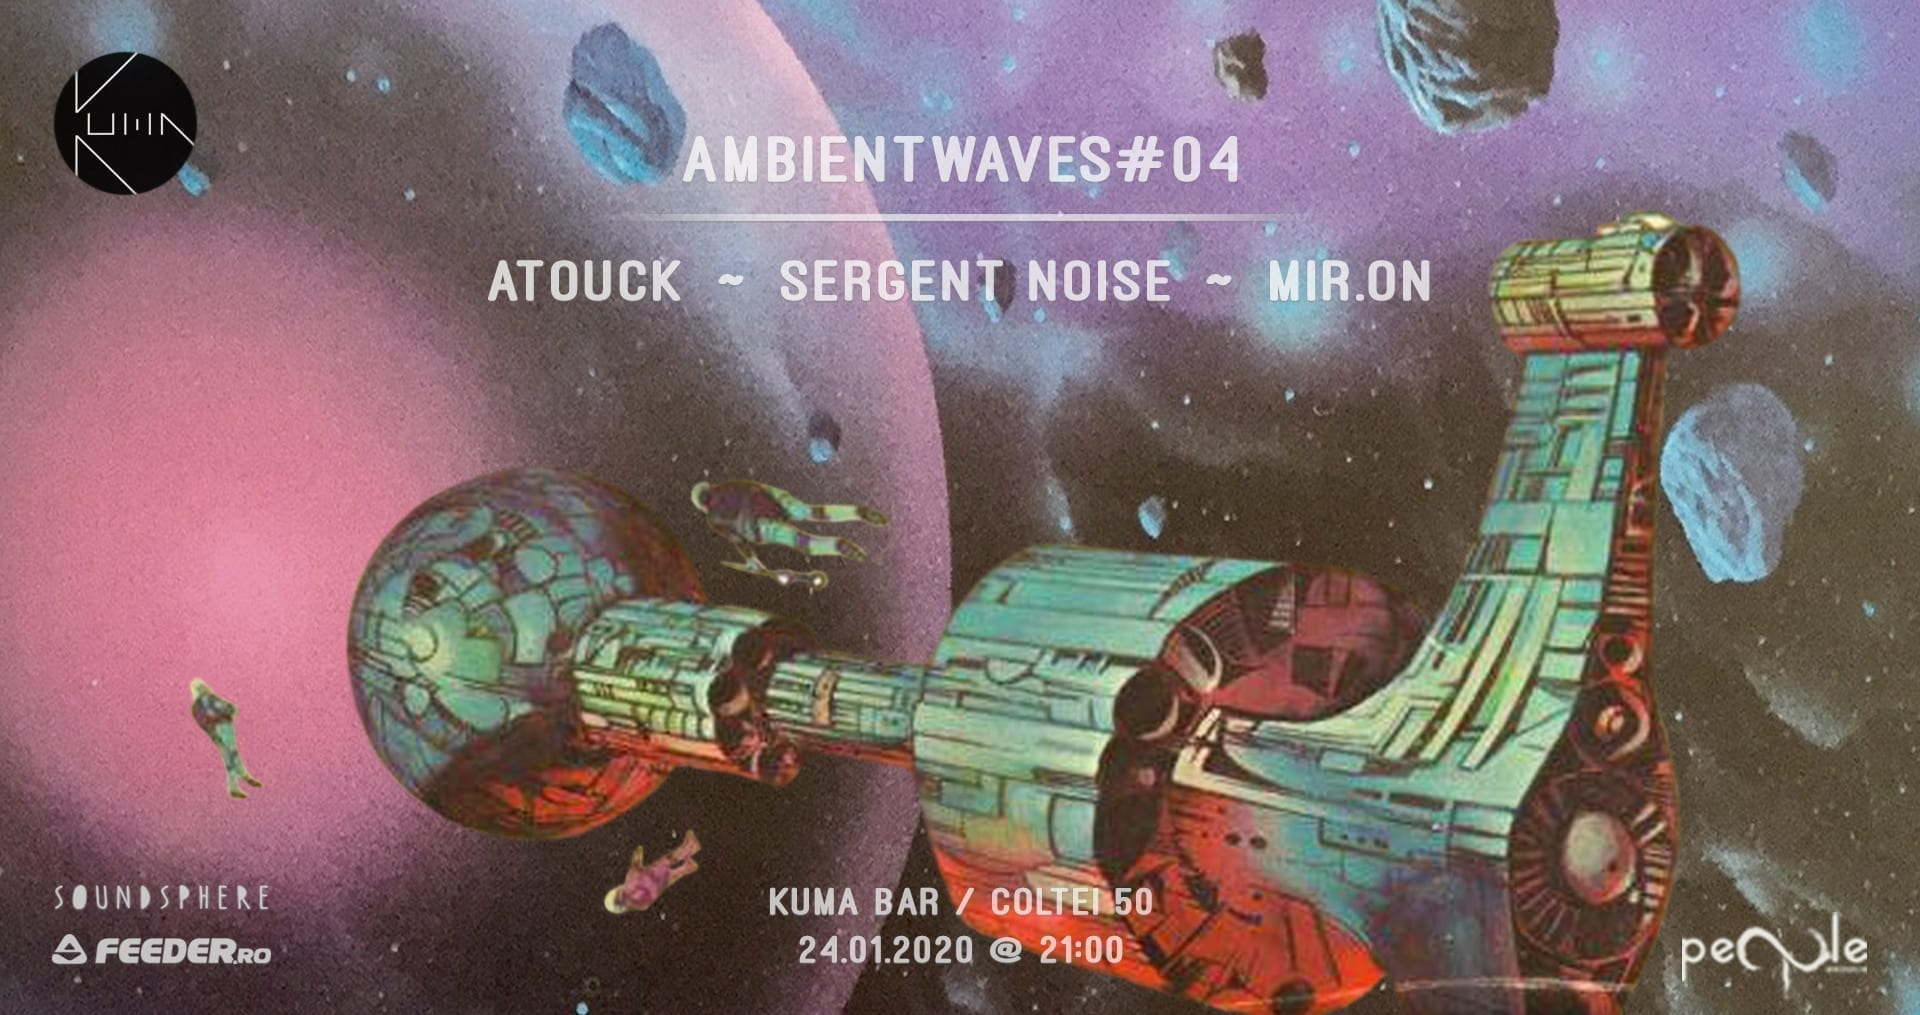 Ambientwaves#04 w. Atouck, mir.ON & Sergent Noise at Kuma Bar